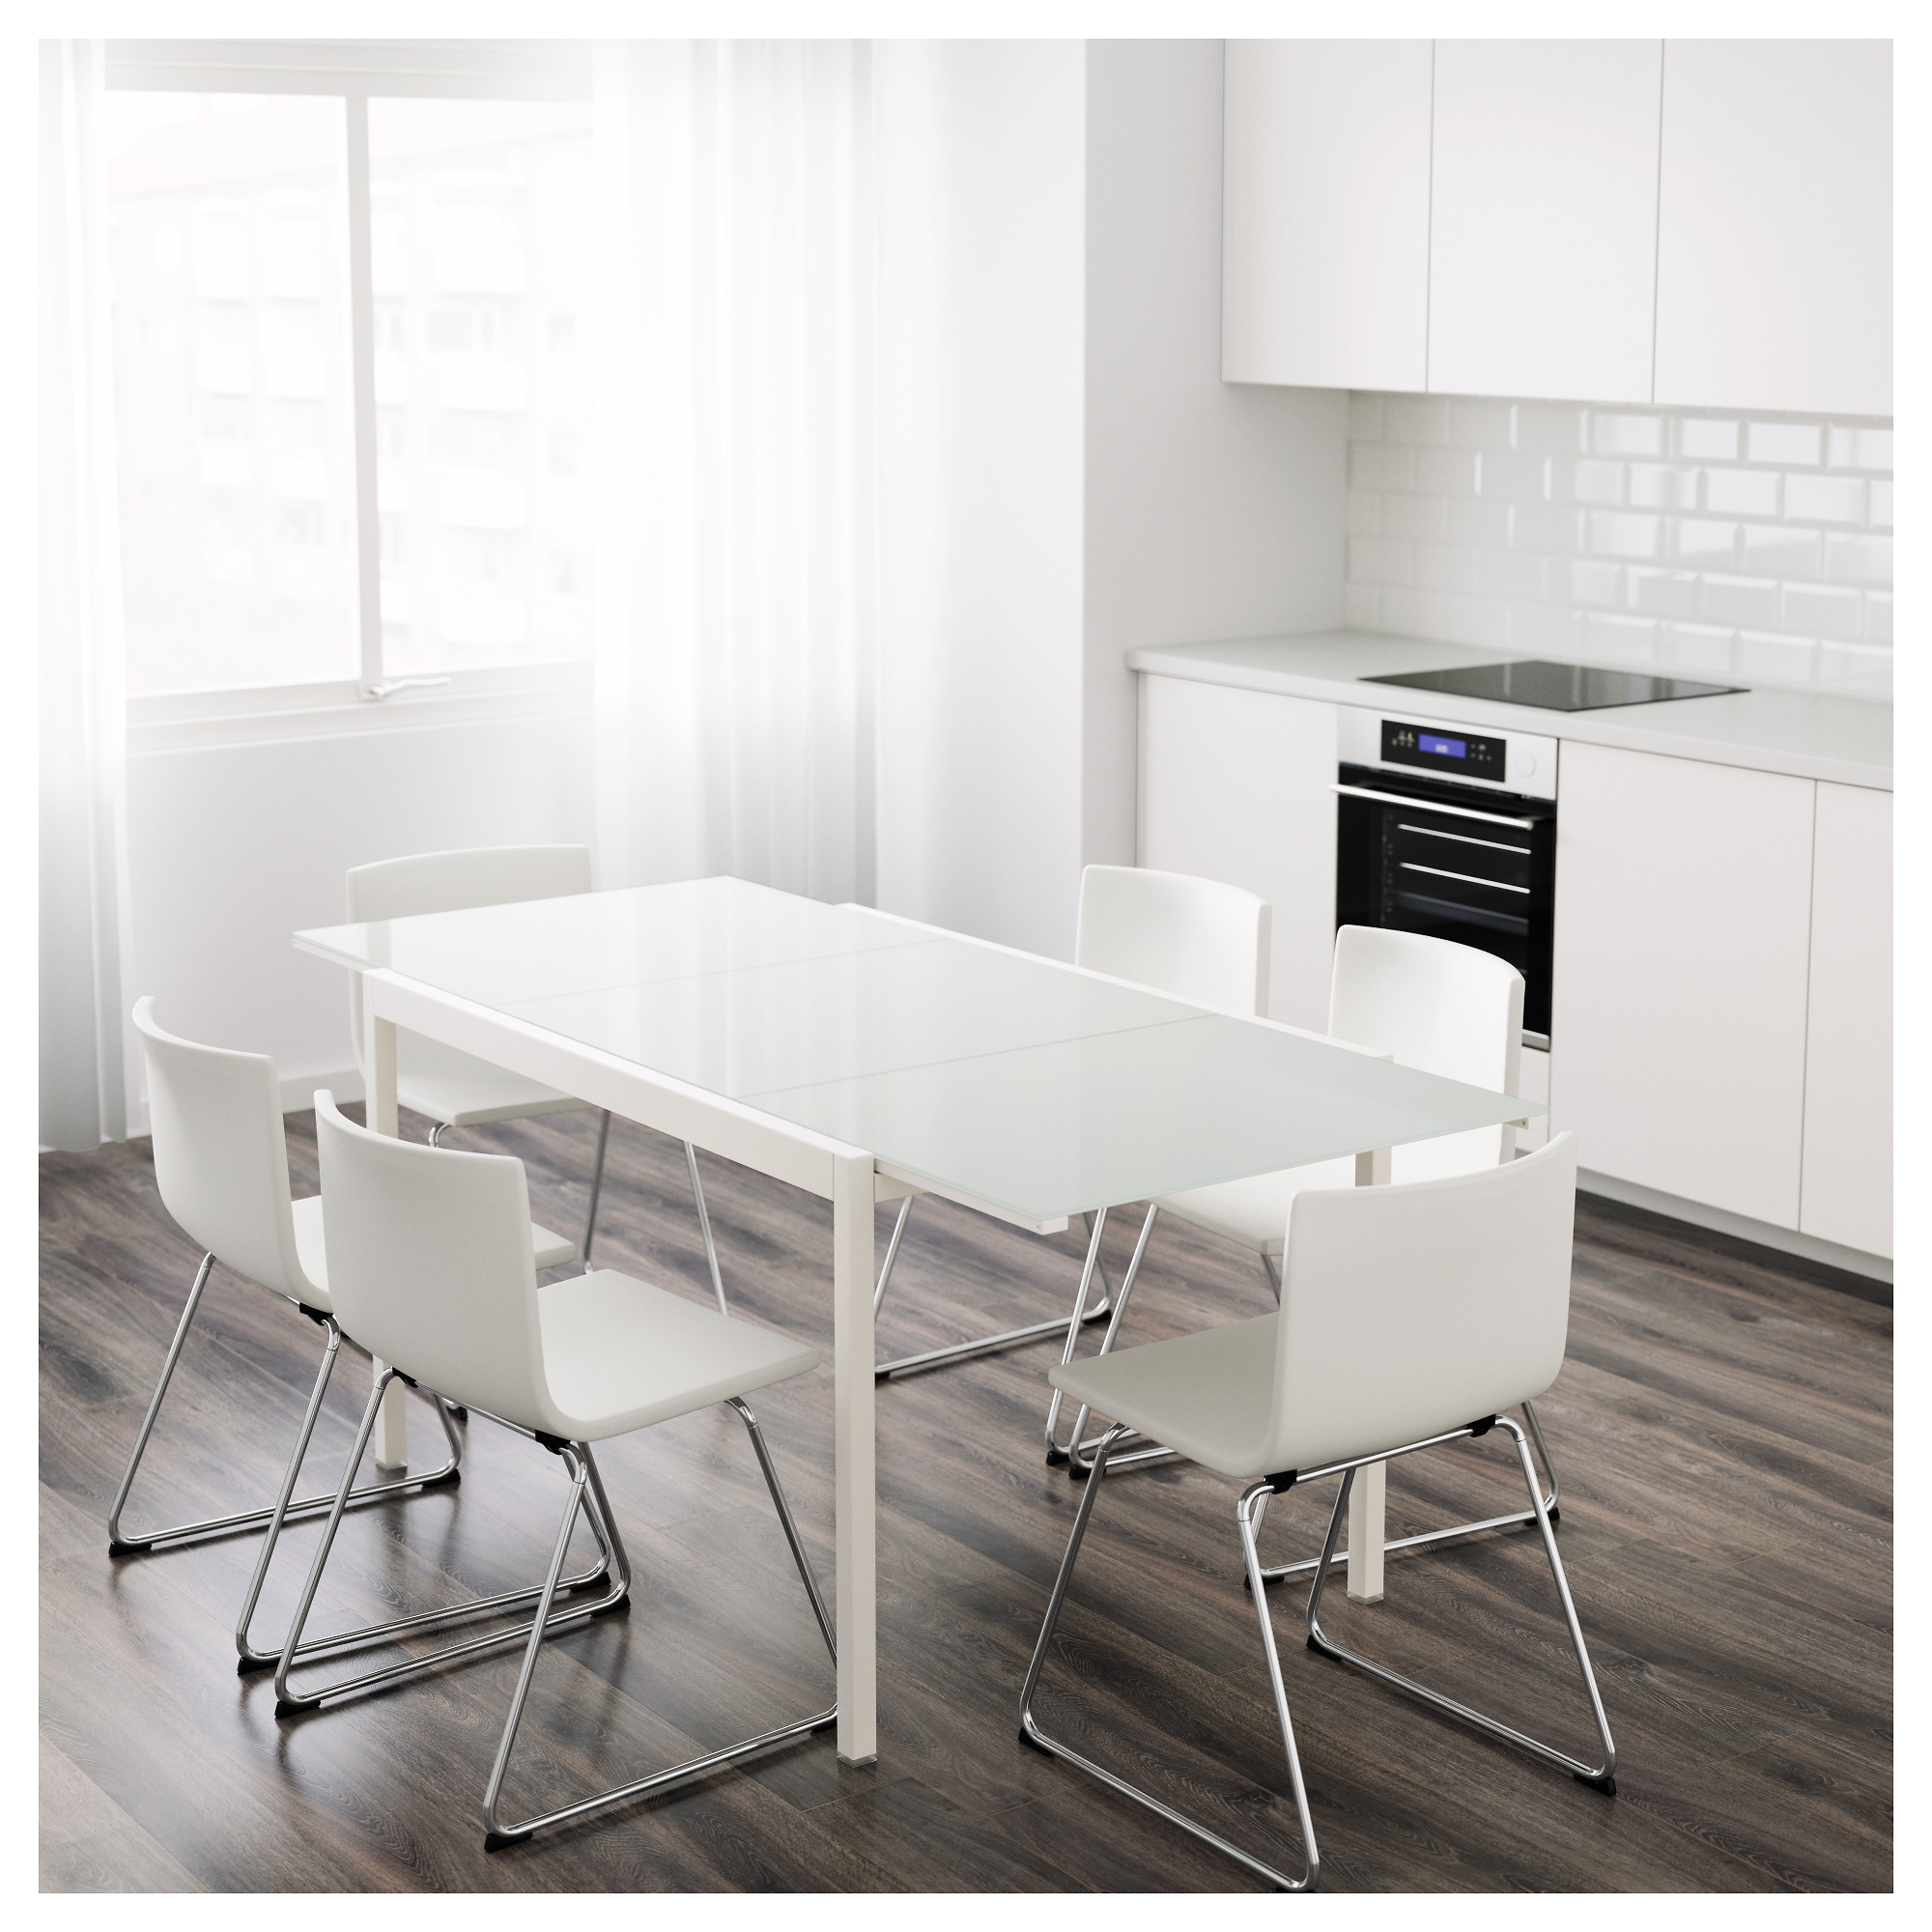 GLIVARP Extendable table IKEA